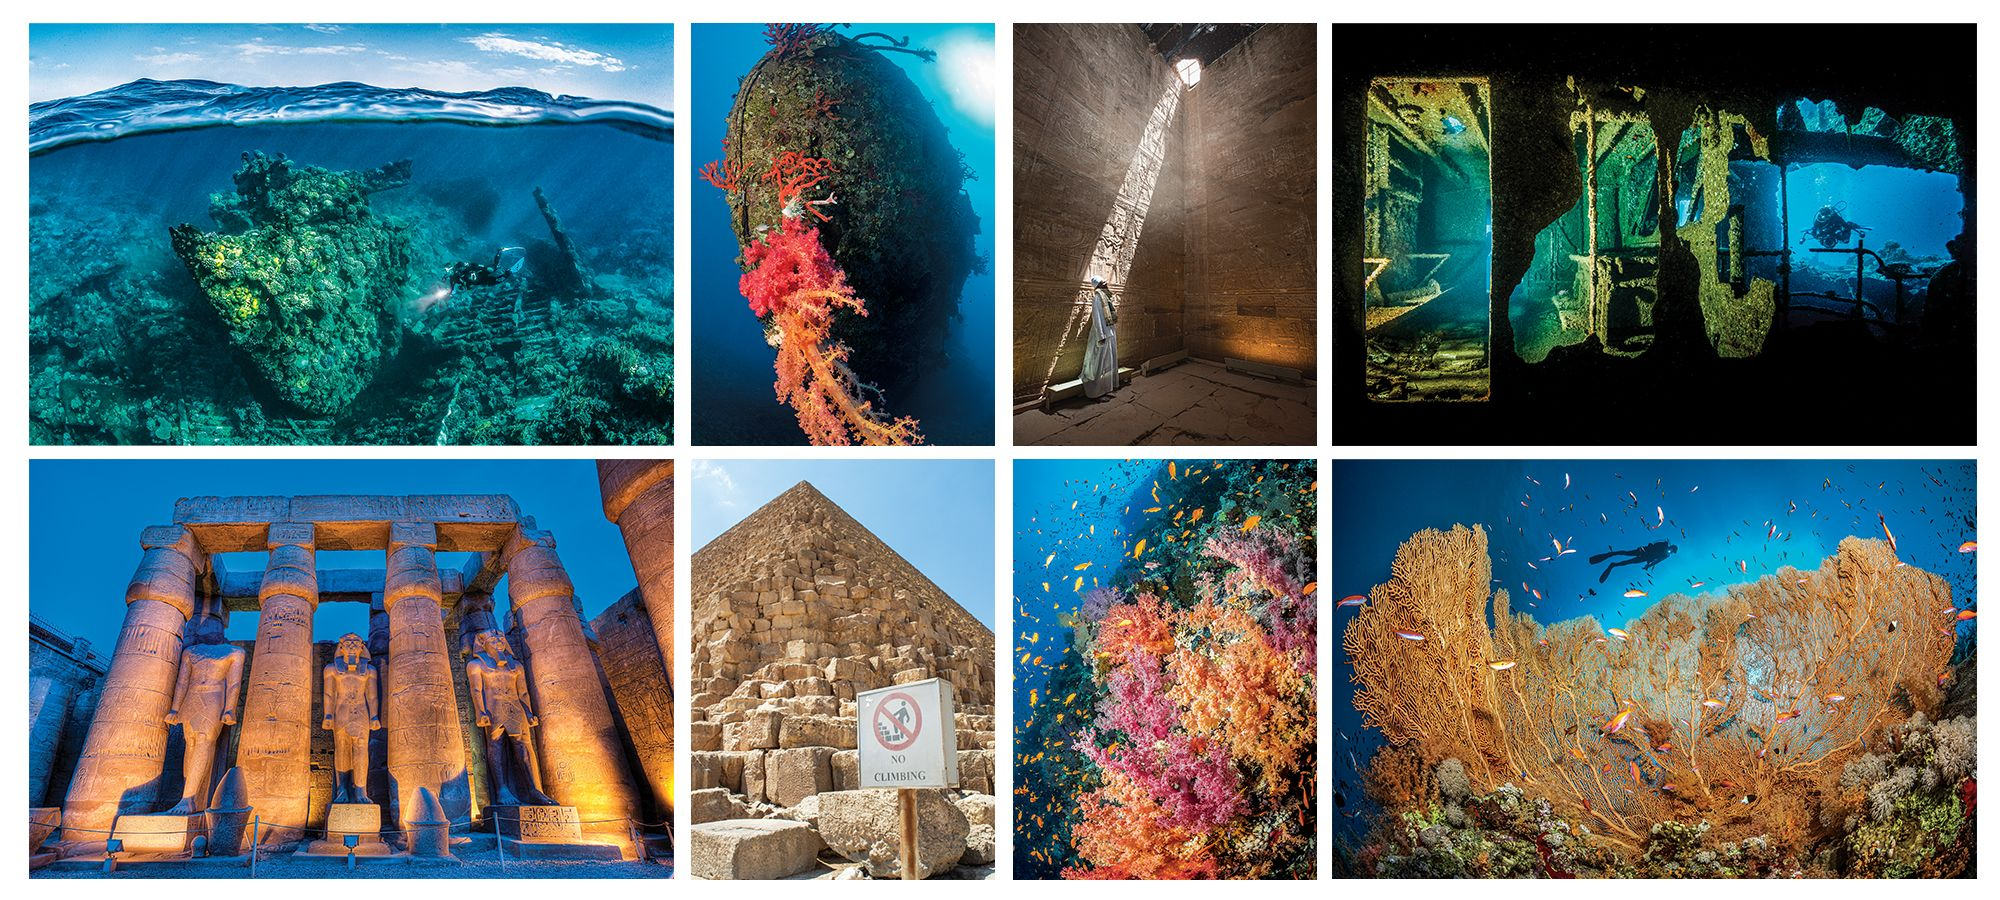 Egyptian Treasures: Uncovering the Wonders of the Red Sea and the Nile